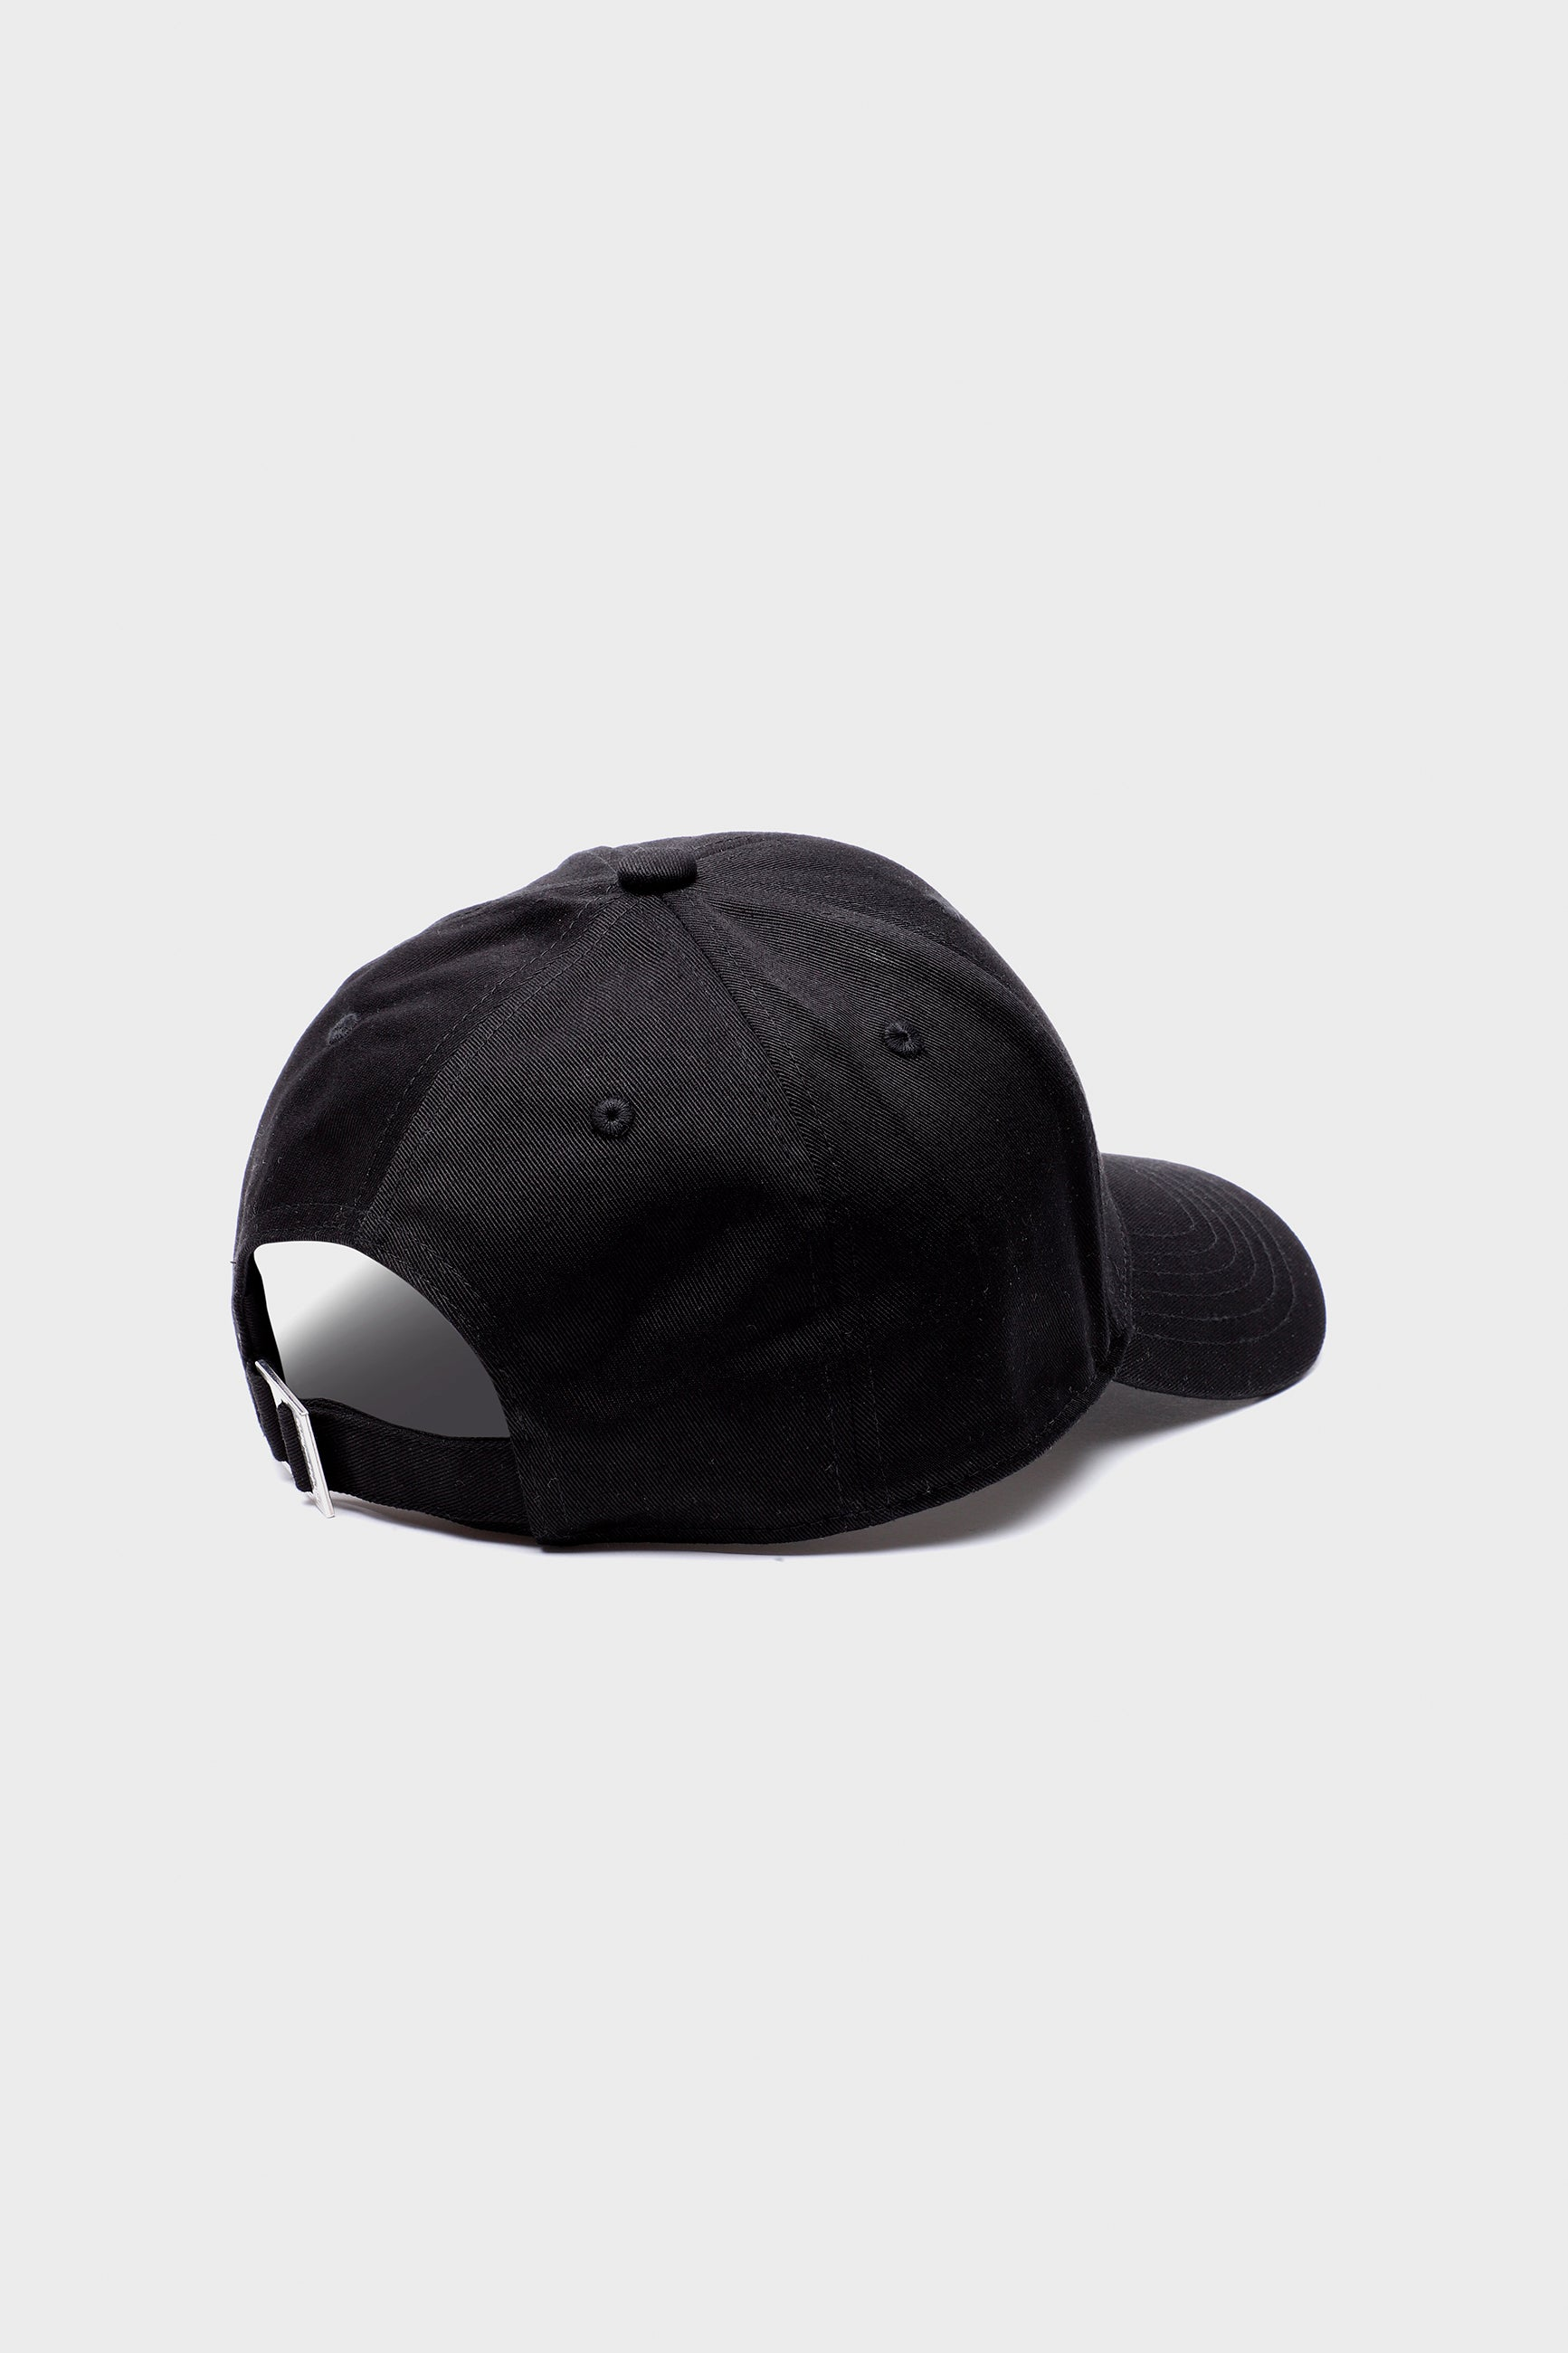 Études Cloud Keith Haring Black Hat 3